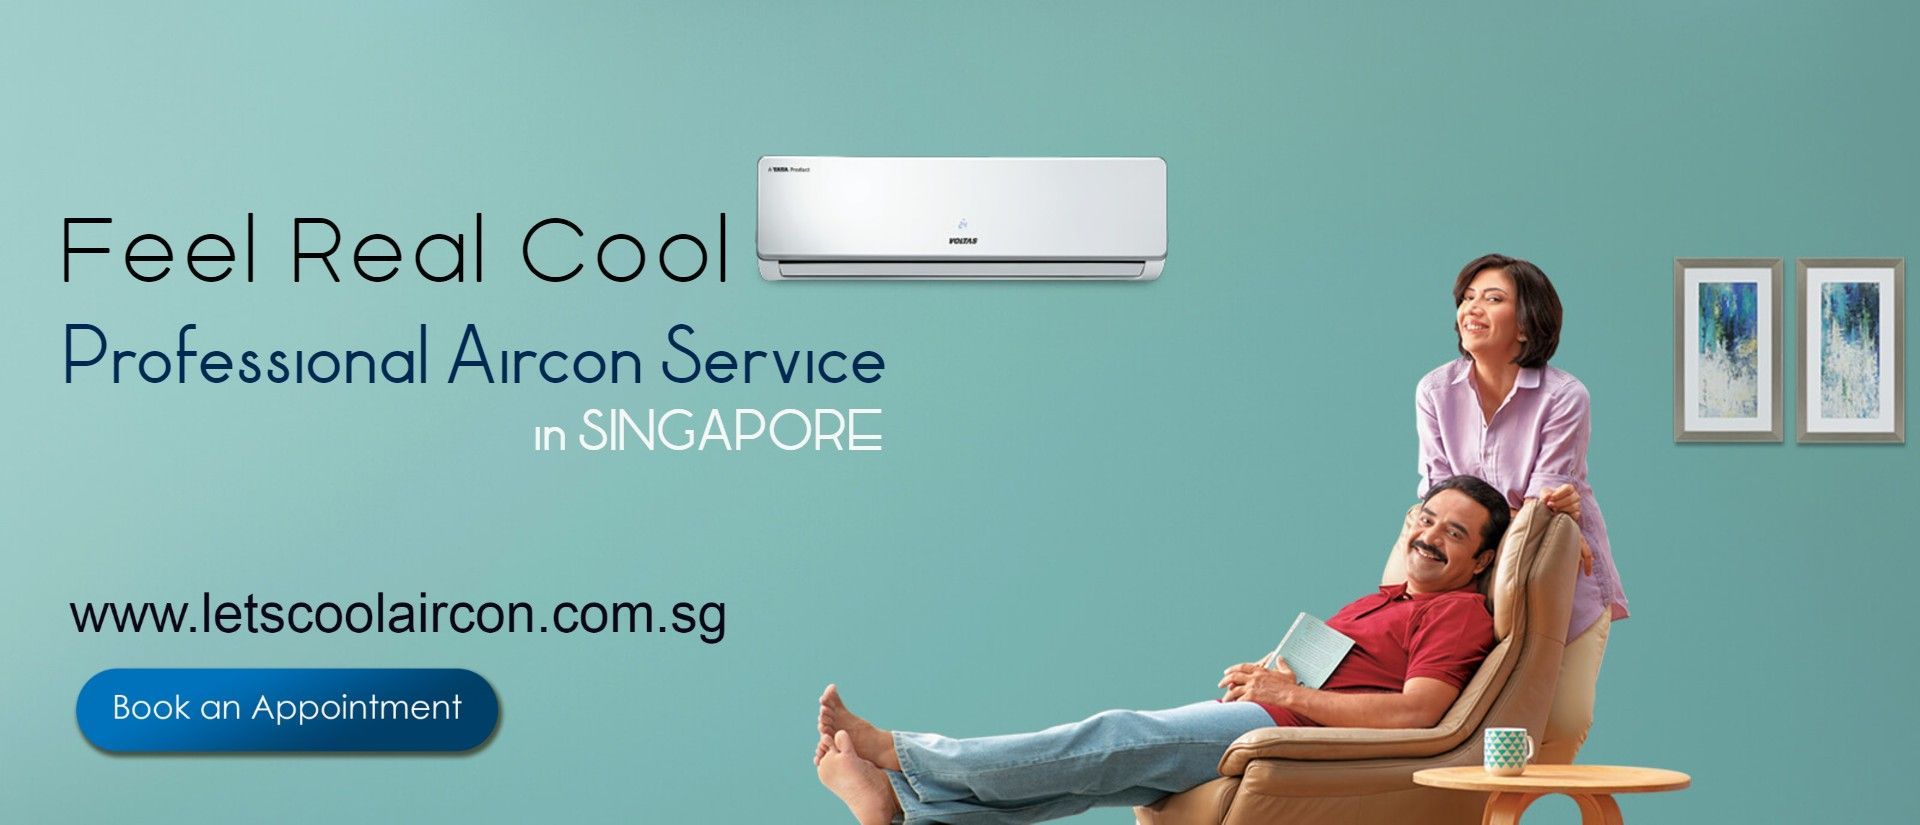 Aircon Service With Images Aircon Air Conditioner Service